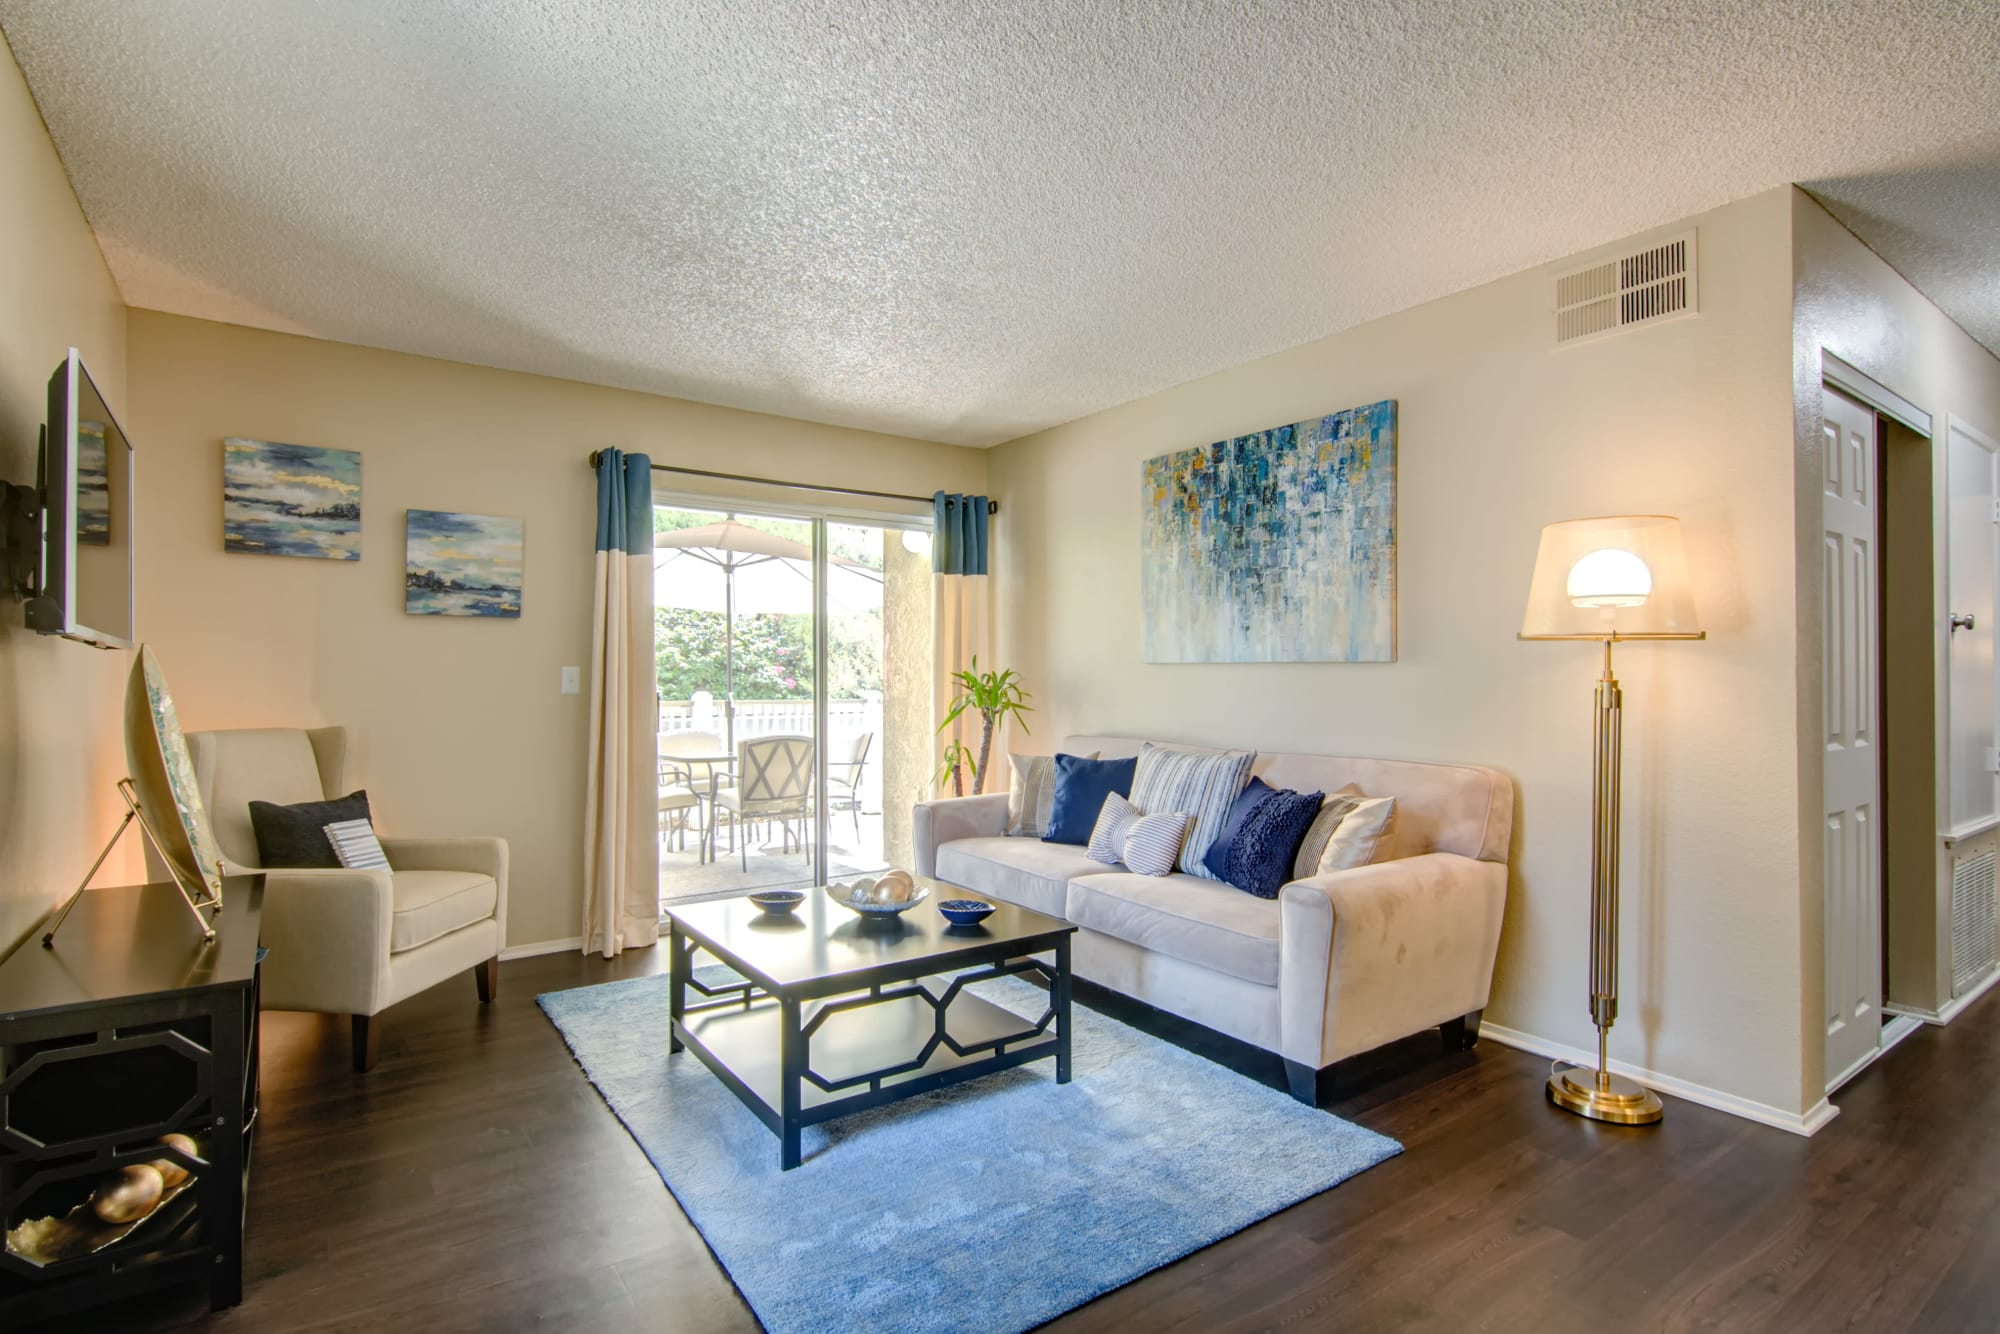 Model Living room with hallway view at Lakeview Village Apartments